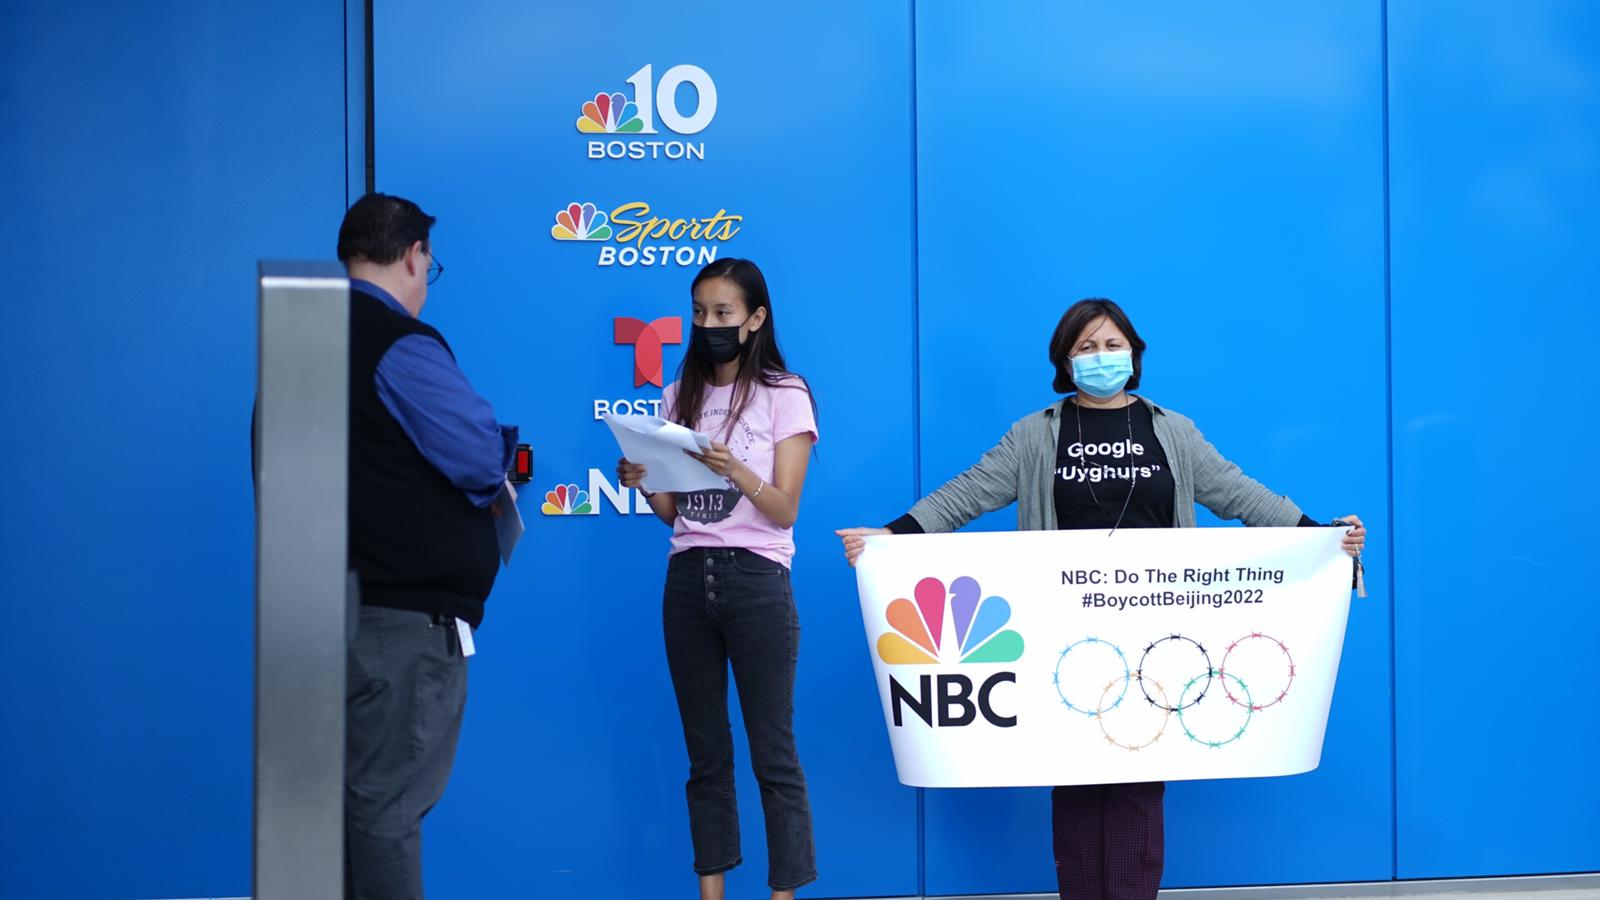 Campaigners protesting about China hosting next year's Winter Olympic and Paralympic Games presented a letter to NBC in Boston ©International Tibet Network